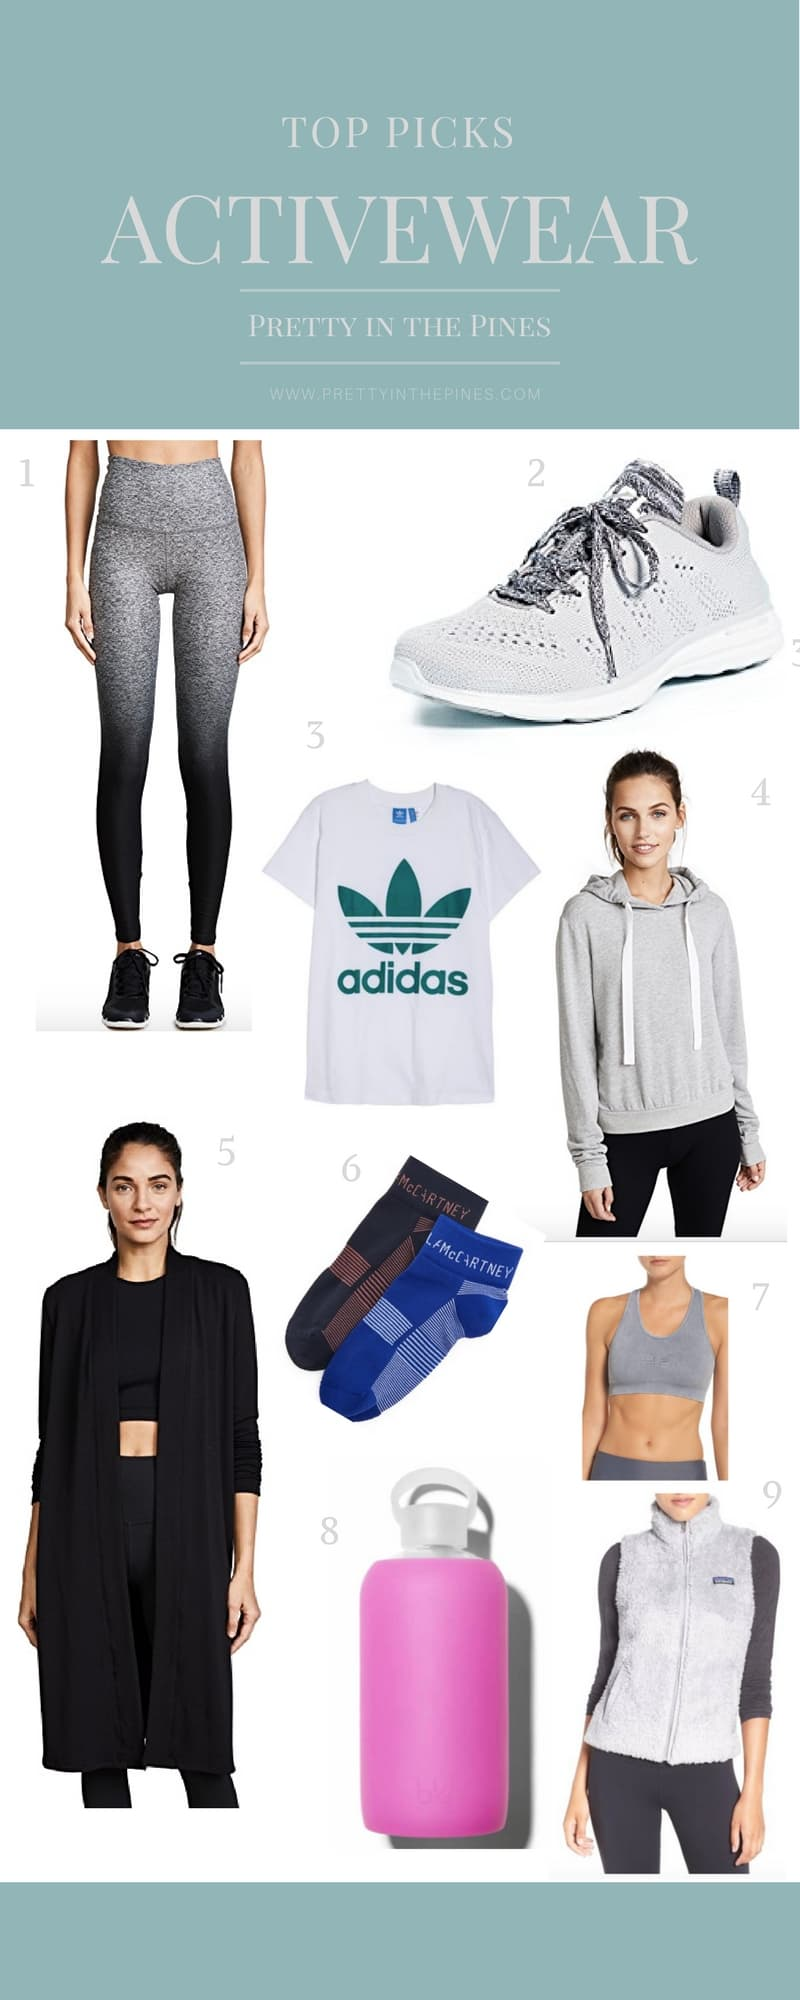 98642a9a9010a9 Activewear Wish List - Pretty in the Pines, North Carolina Lifestyle ...